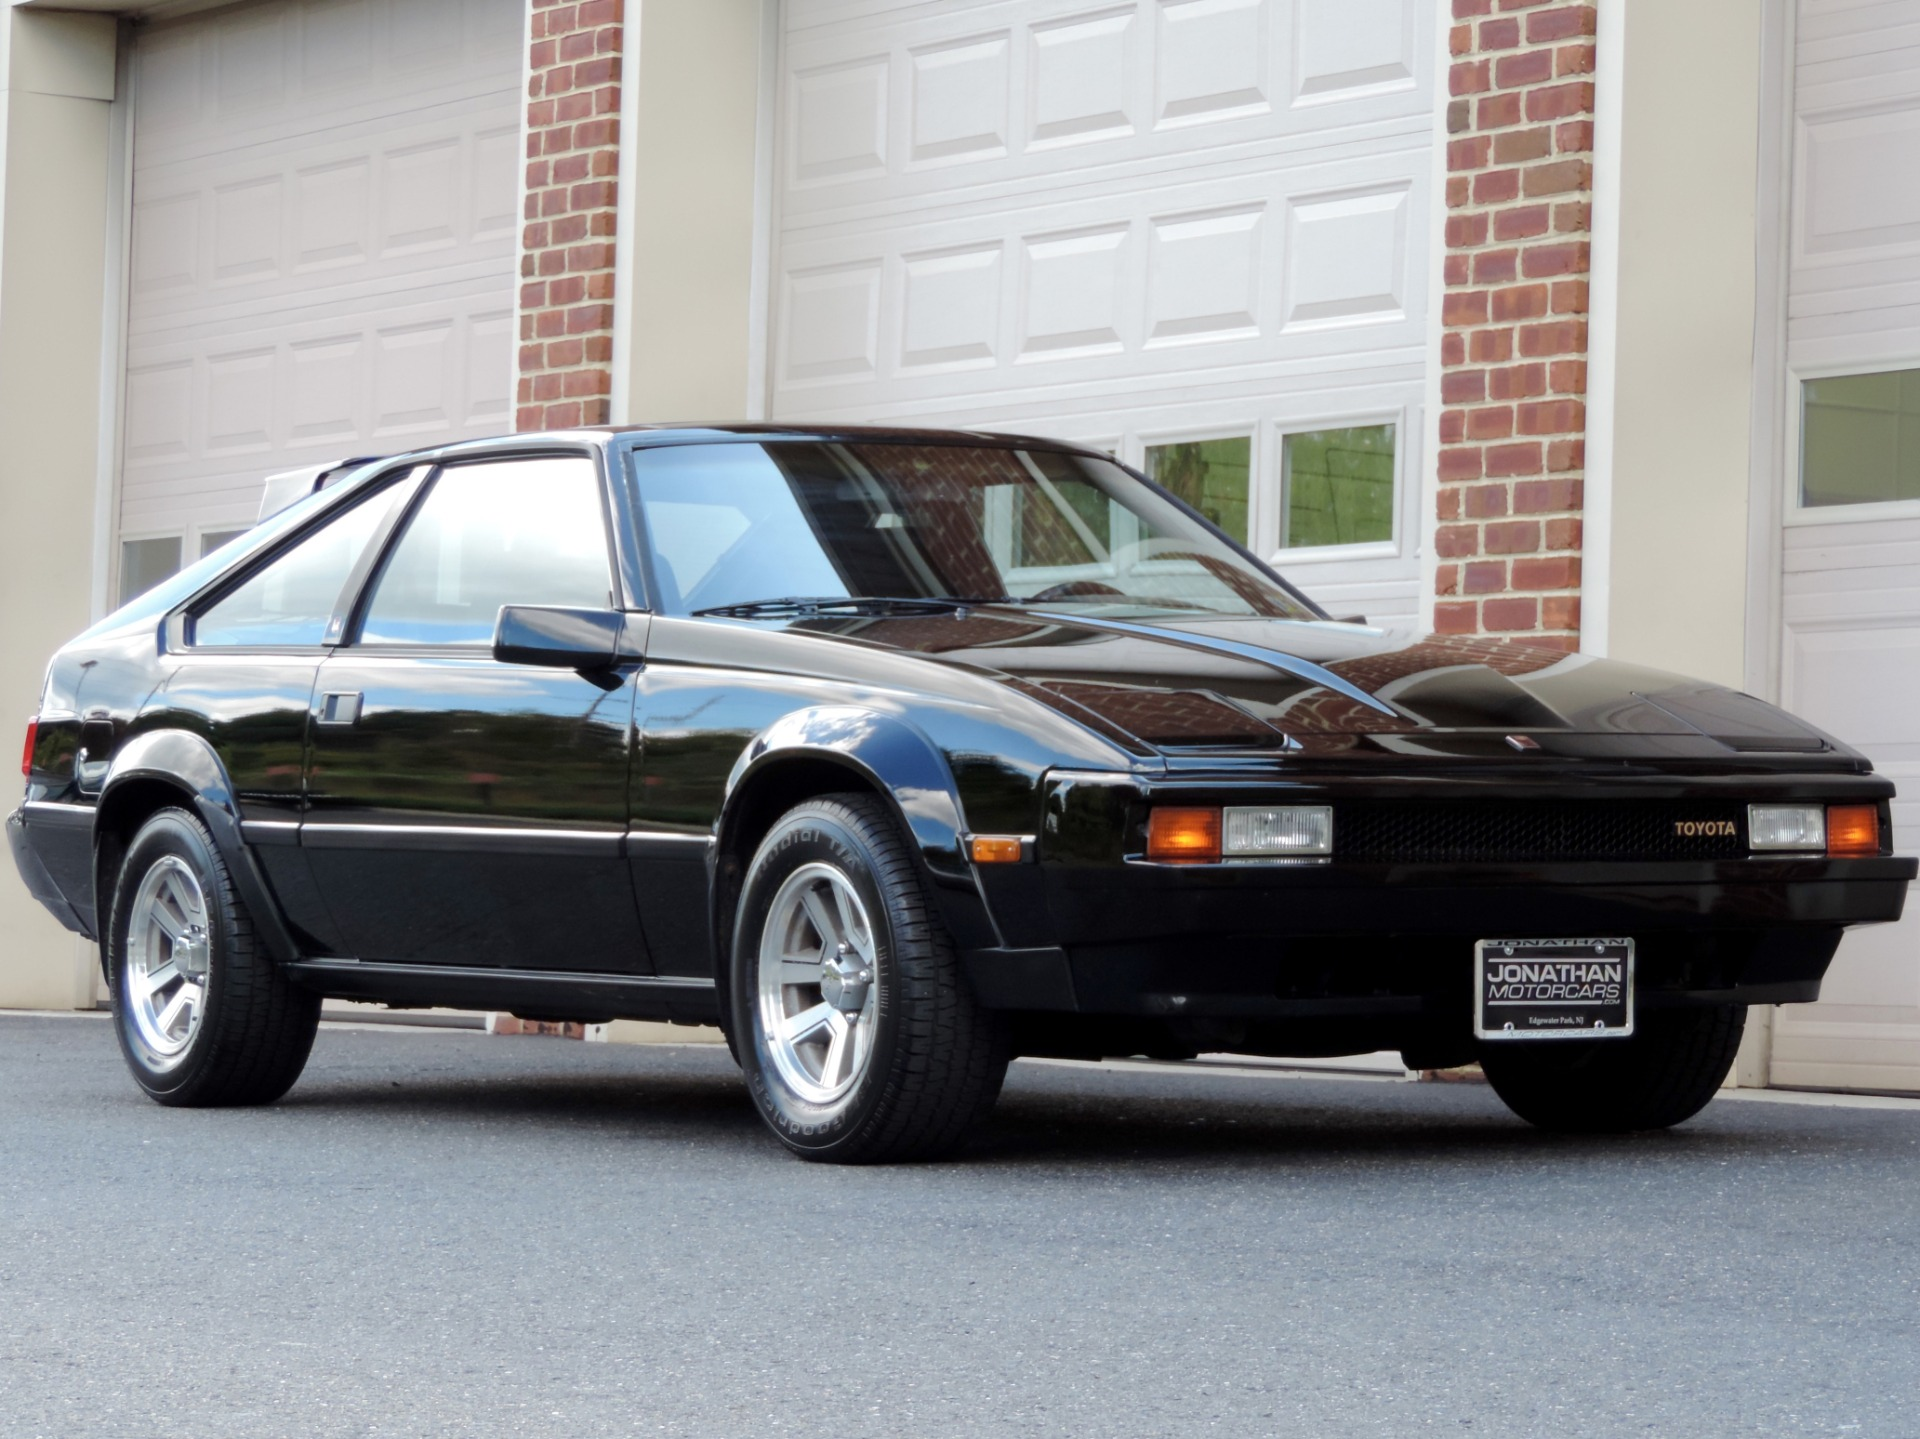 Toyota Dealer Nj >> 1982 Toyota Celica Supra Stock # 031620 for sale near ...